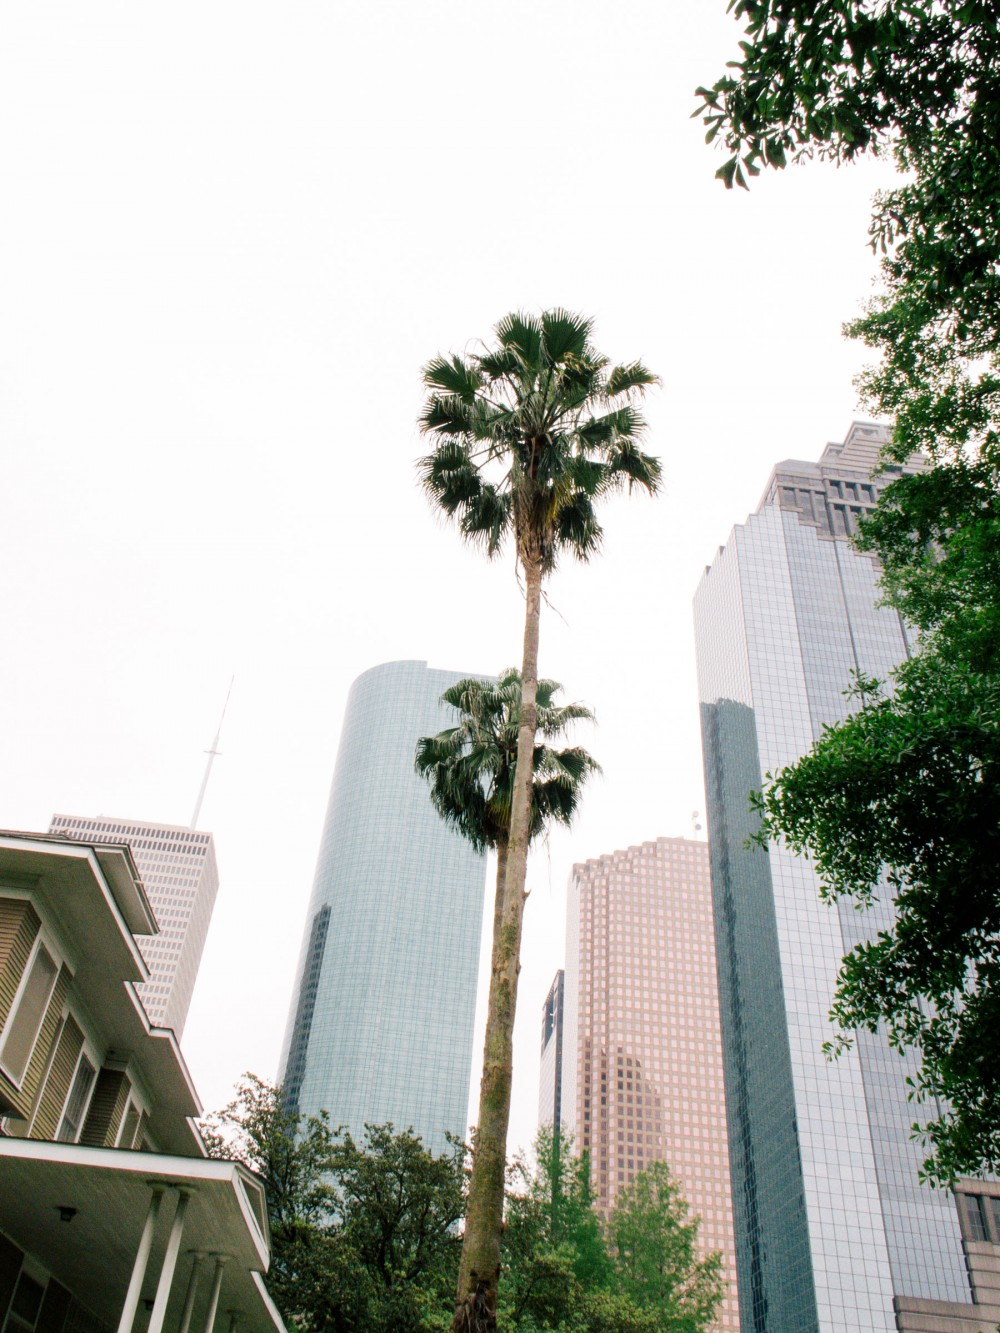 Photograph of two tall palm trees among city skyscrapers. By Brenda Cruz Wolf